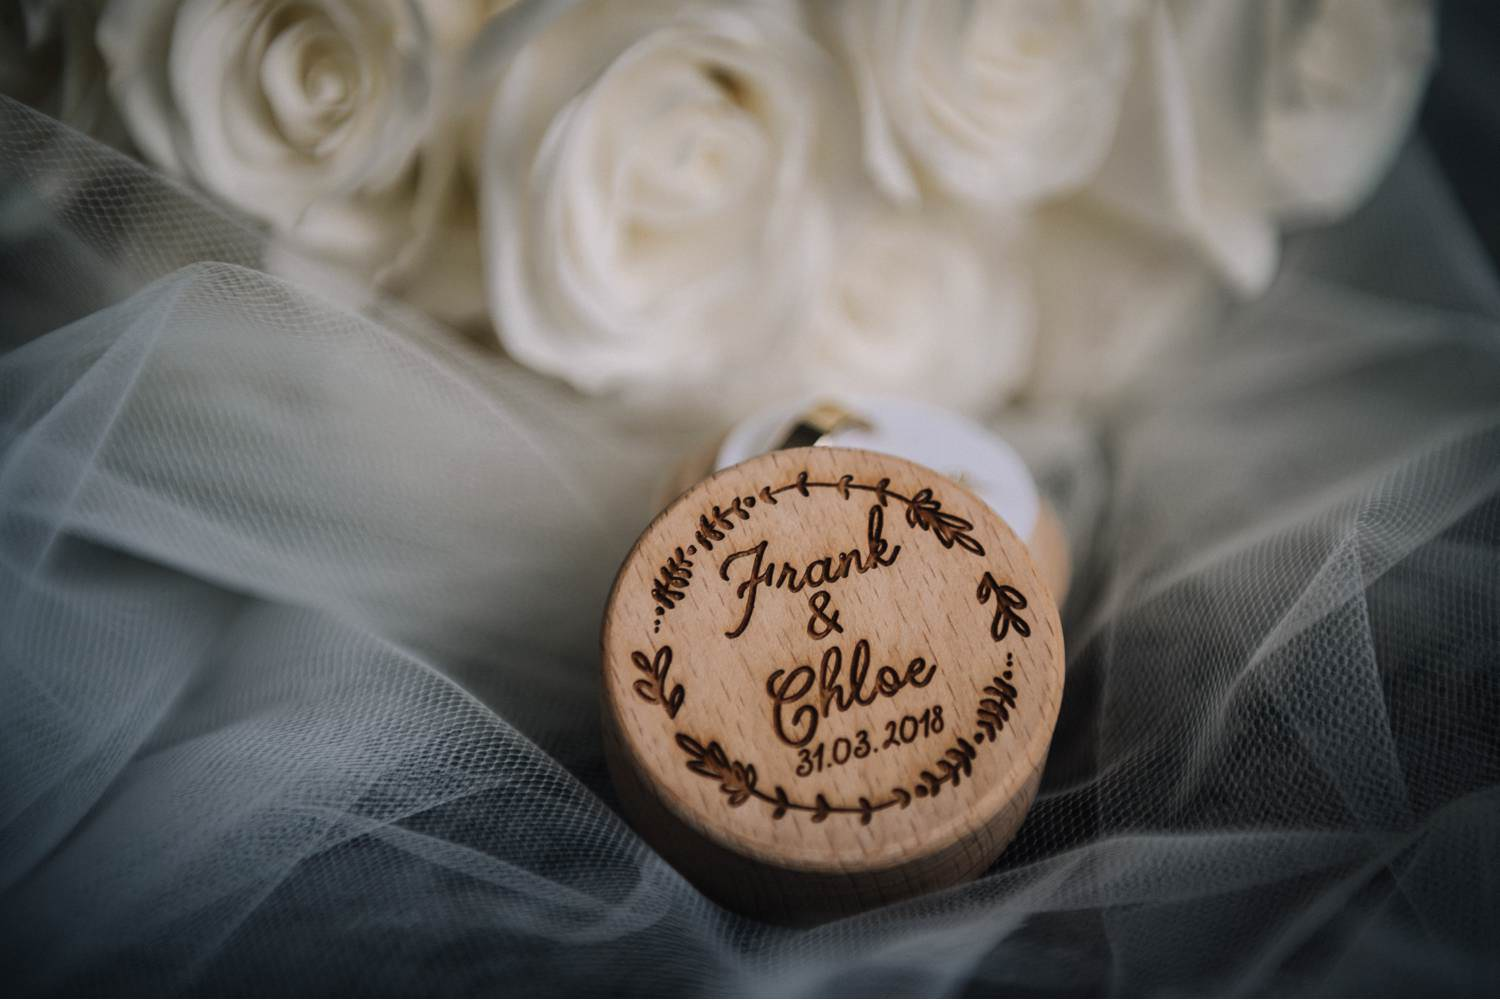 Box with wedding rings